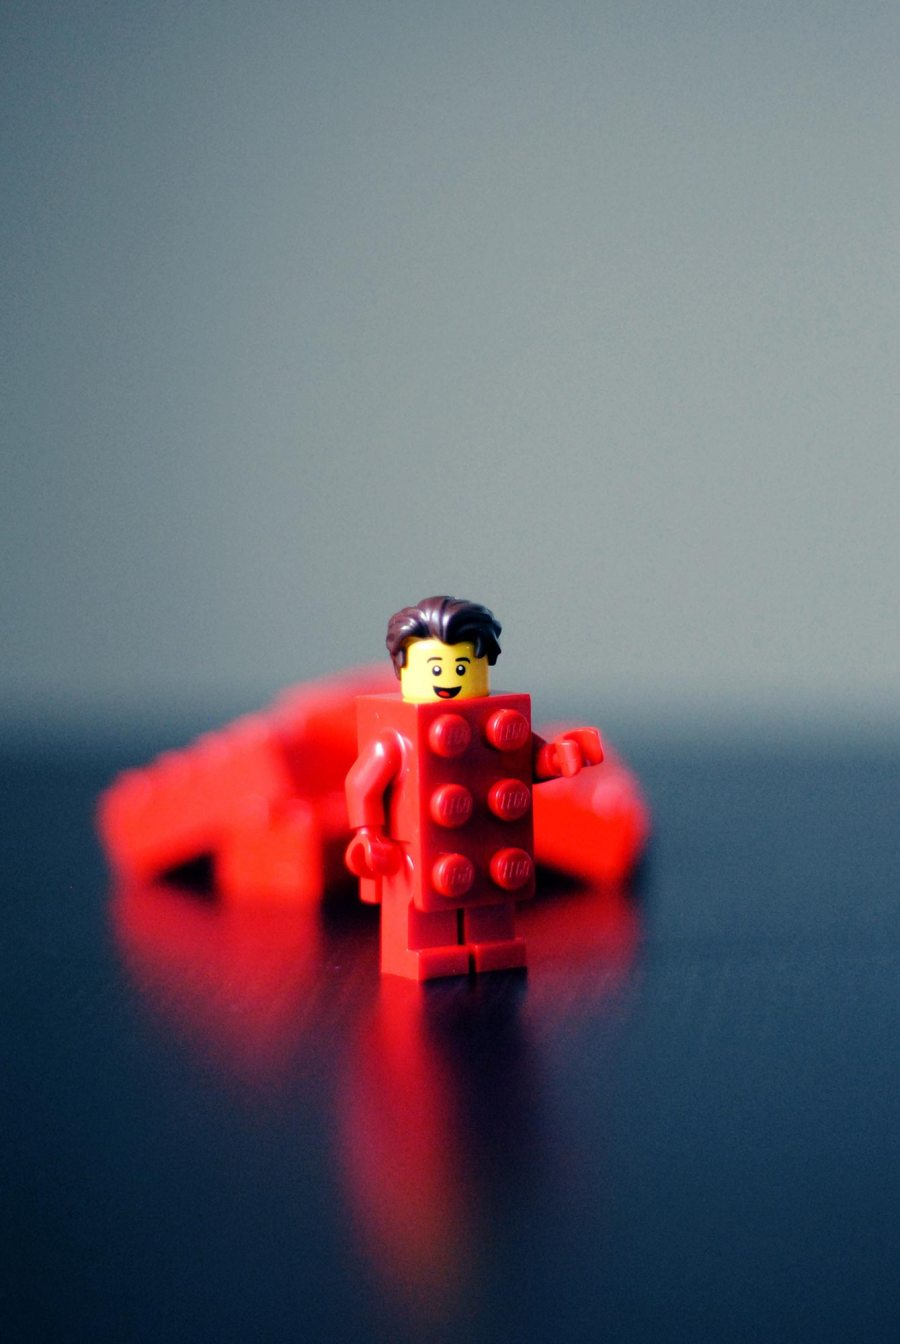 Lego Architecture and the (super)power of playfulness